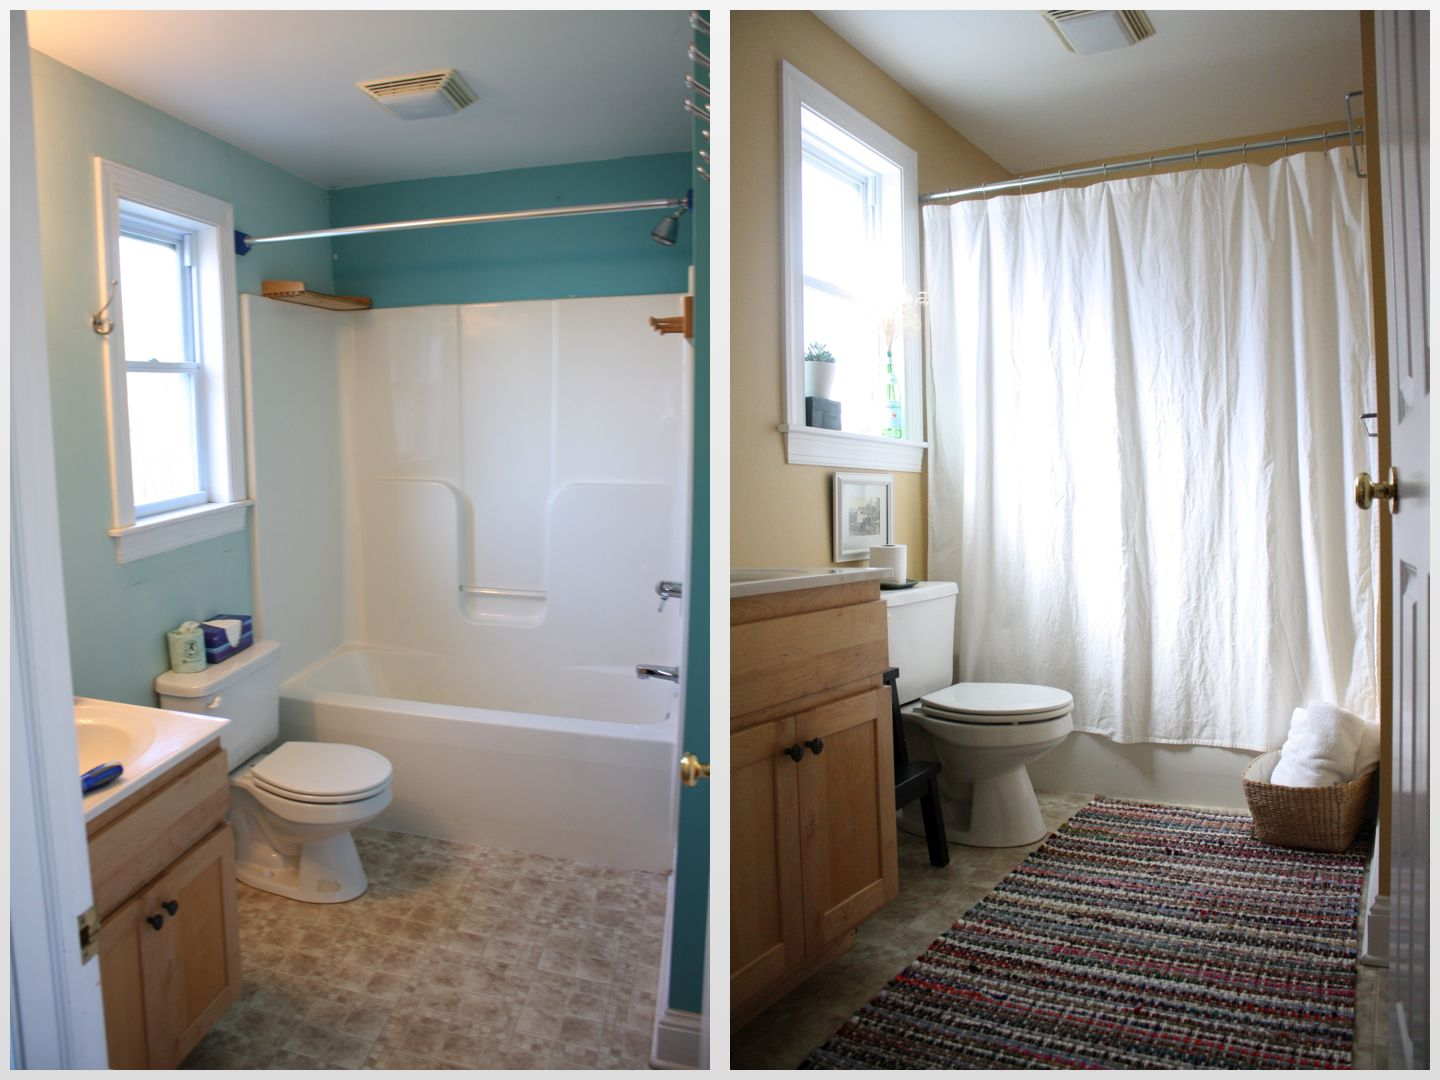 Small Master Bathroom Remodel Before And After House Decor – Bathroom Remodel Ideas Before and After